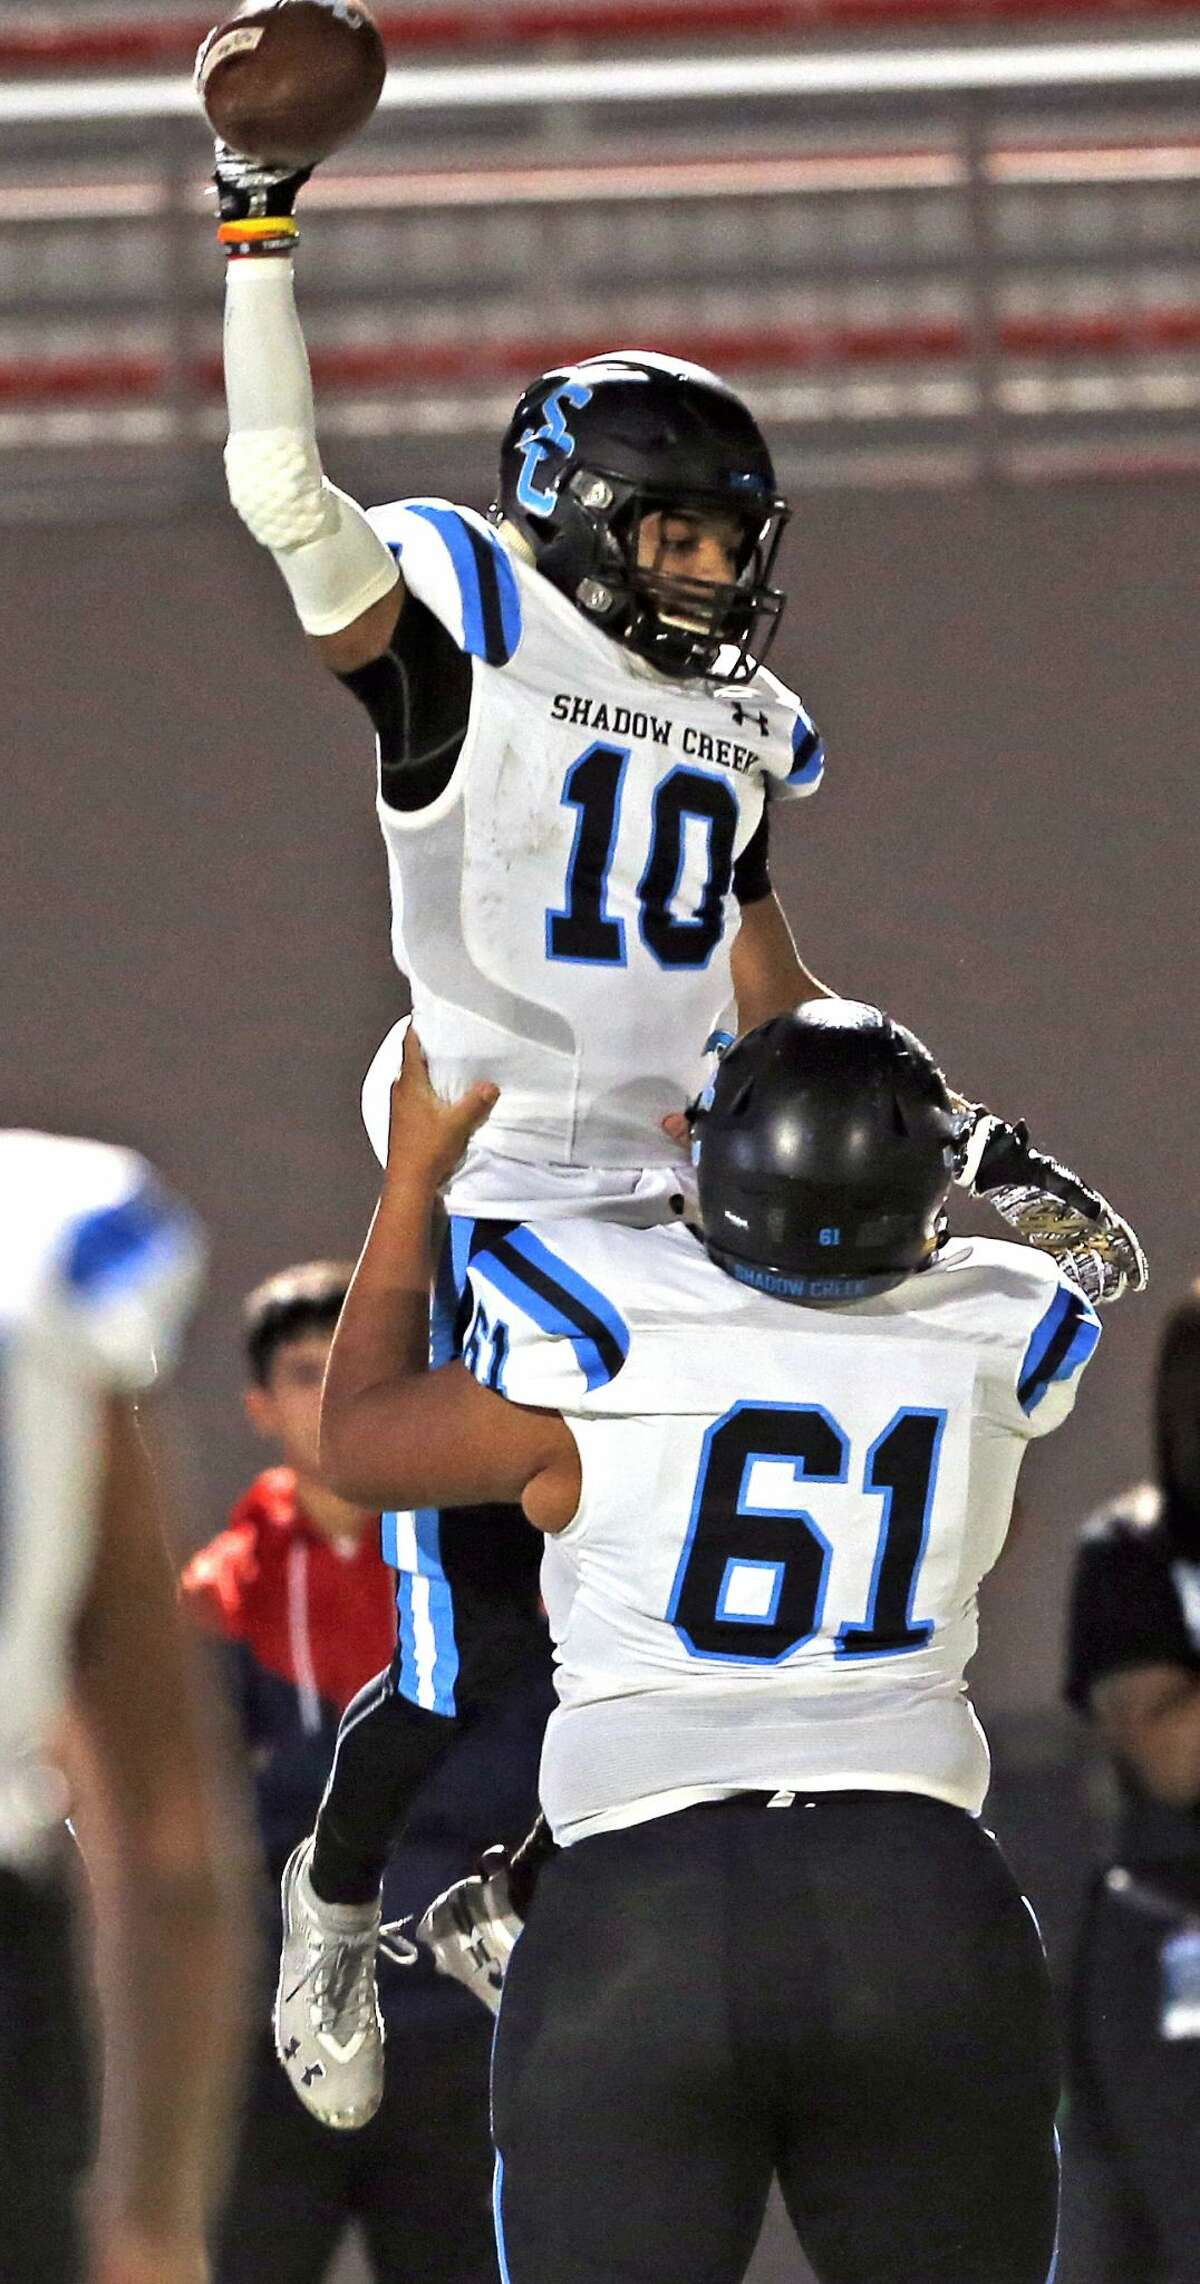 Wagner Shadow Creek wide receiver Greg Hancock celebrates his touchdown in first half action for Class 5A Division I state semiifinal at the Alamo Stadium on Friday, December, 13, 2019. Score at halftime Shadow Creek 24 Wagner 21.